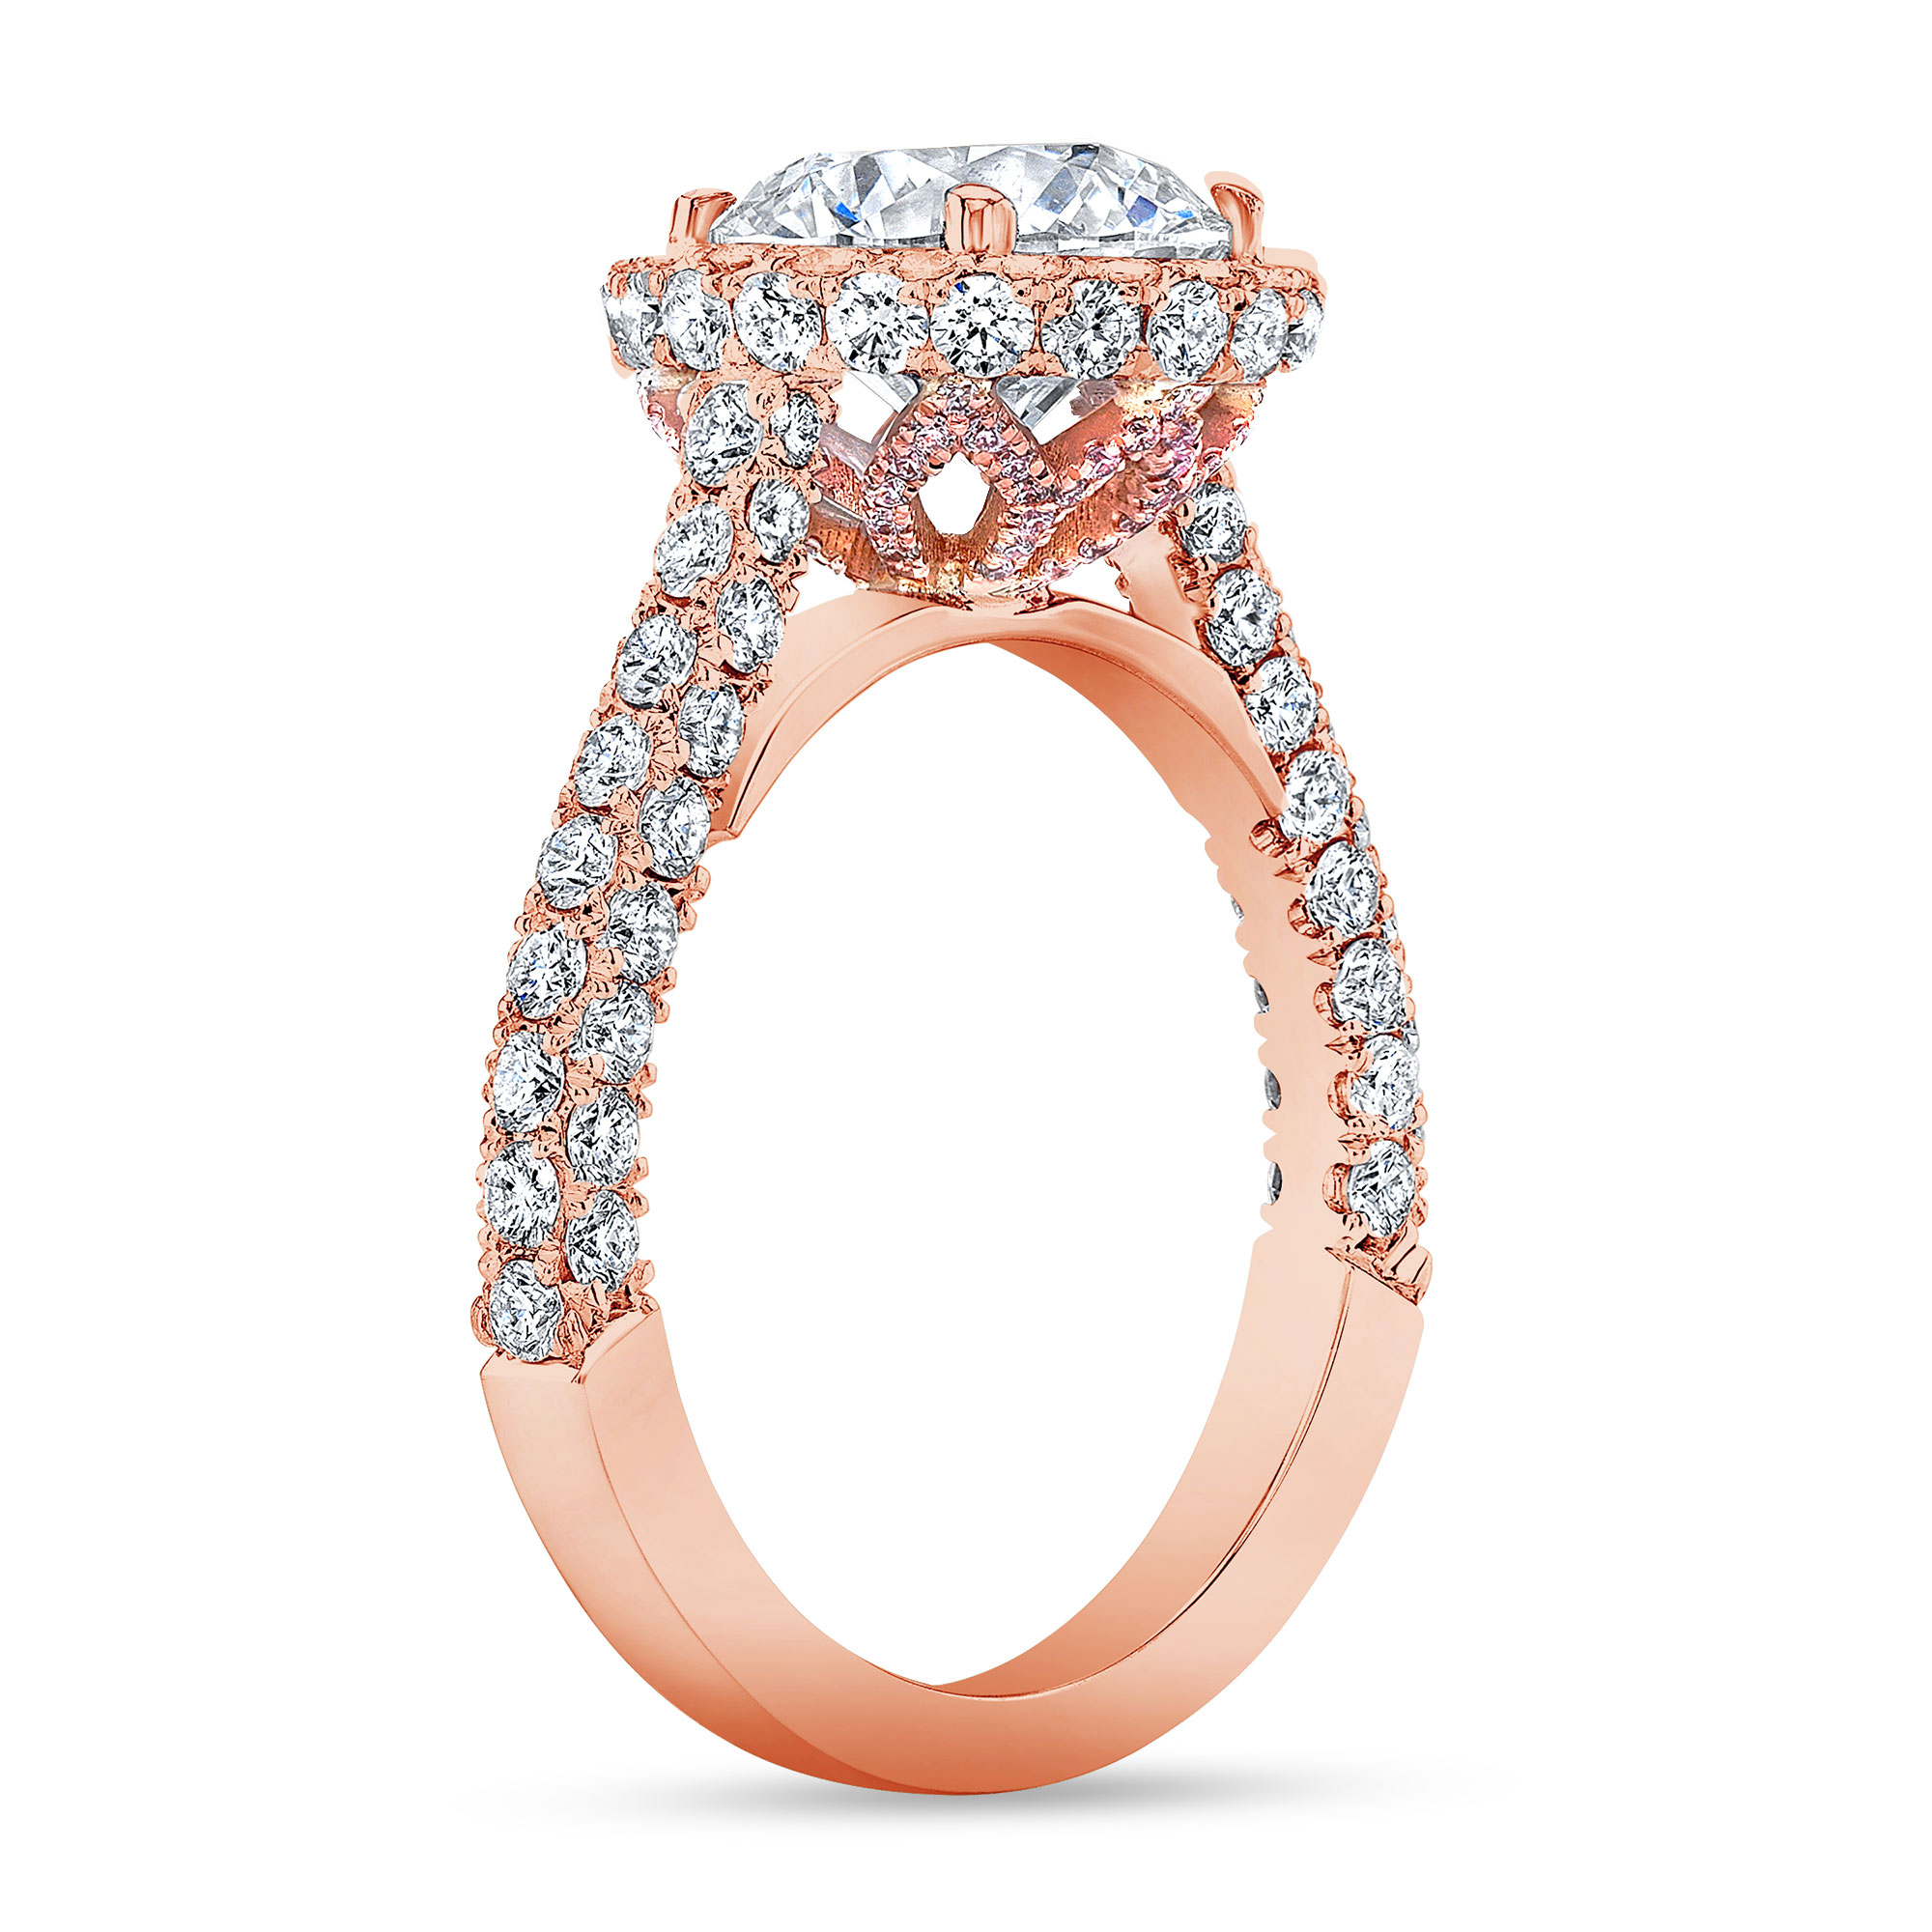 Halo 3 Sided Pave Engagement Ring  With Pink Diamonds